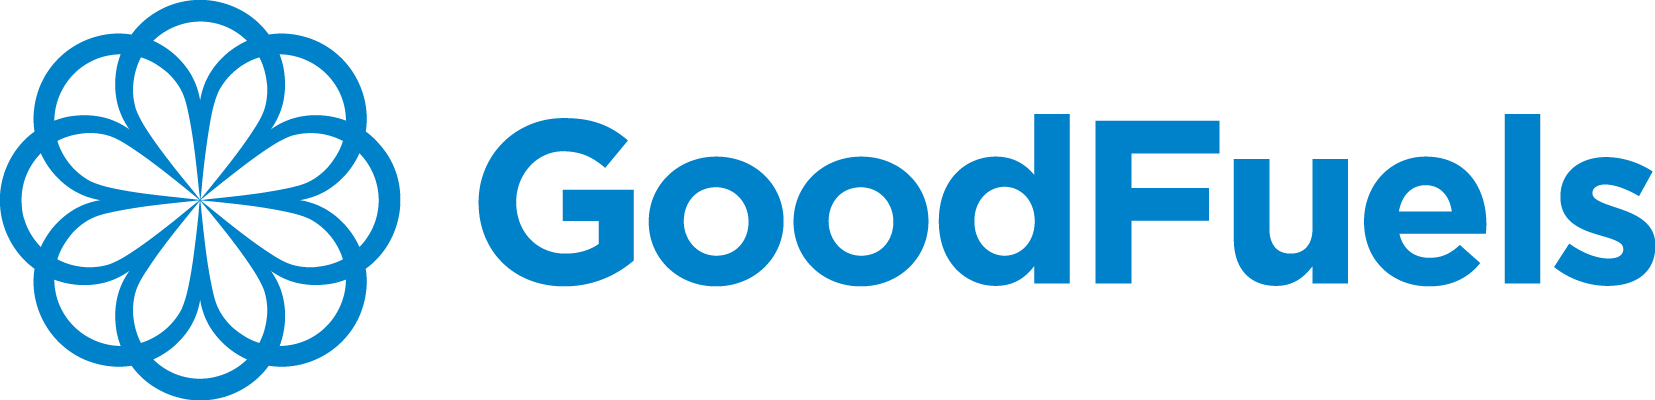 Goodfuels logo blue